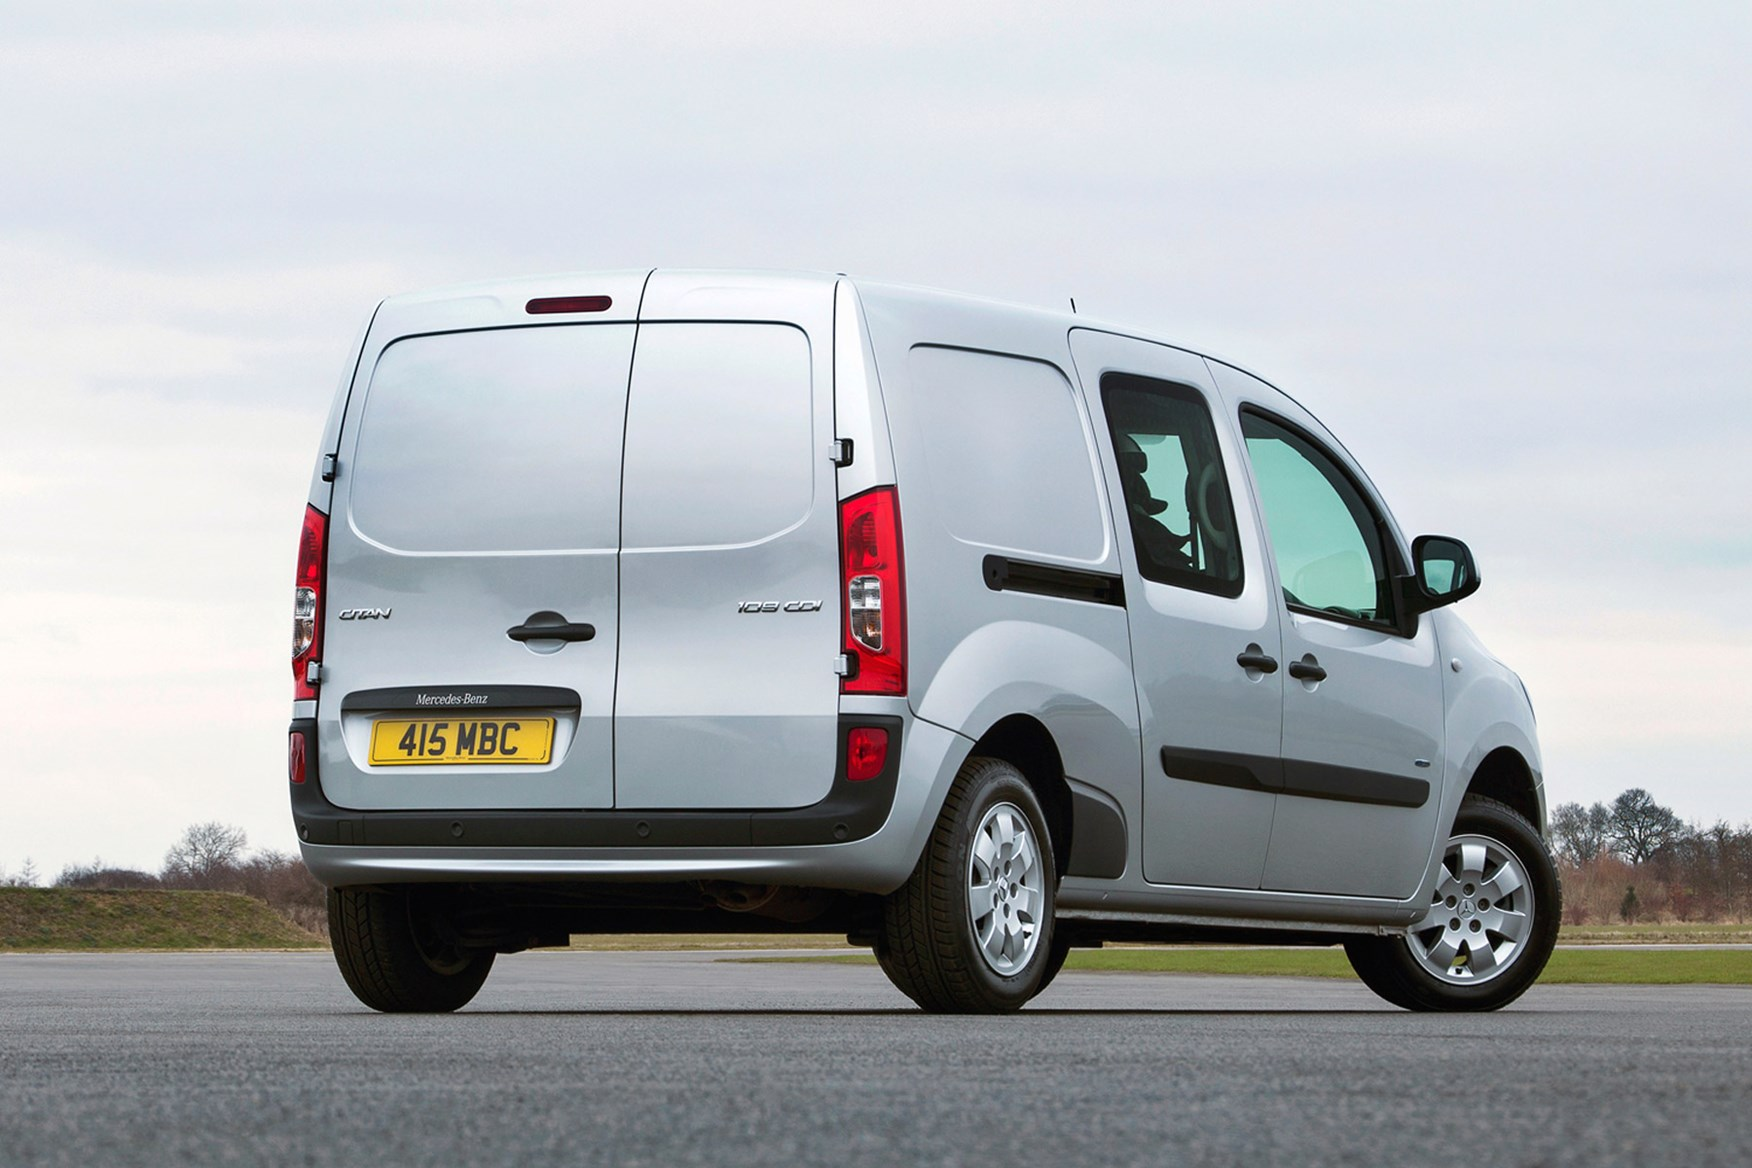 Mercedes-Benz Citan full review on Parkers Vans - rear exterior